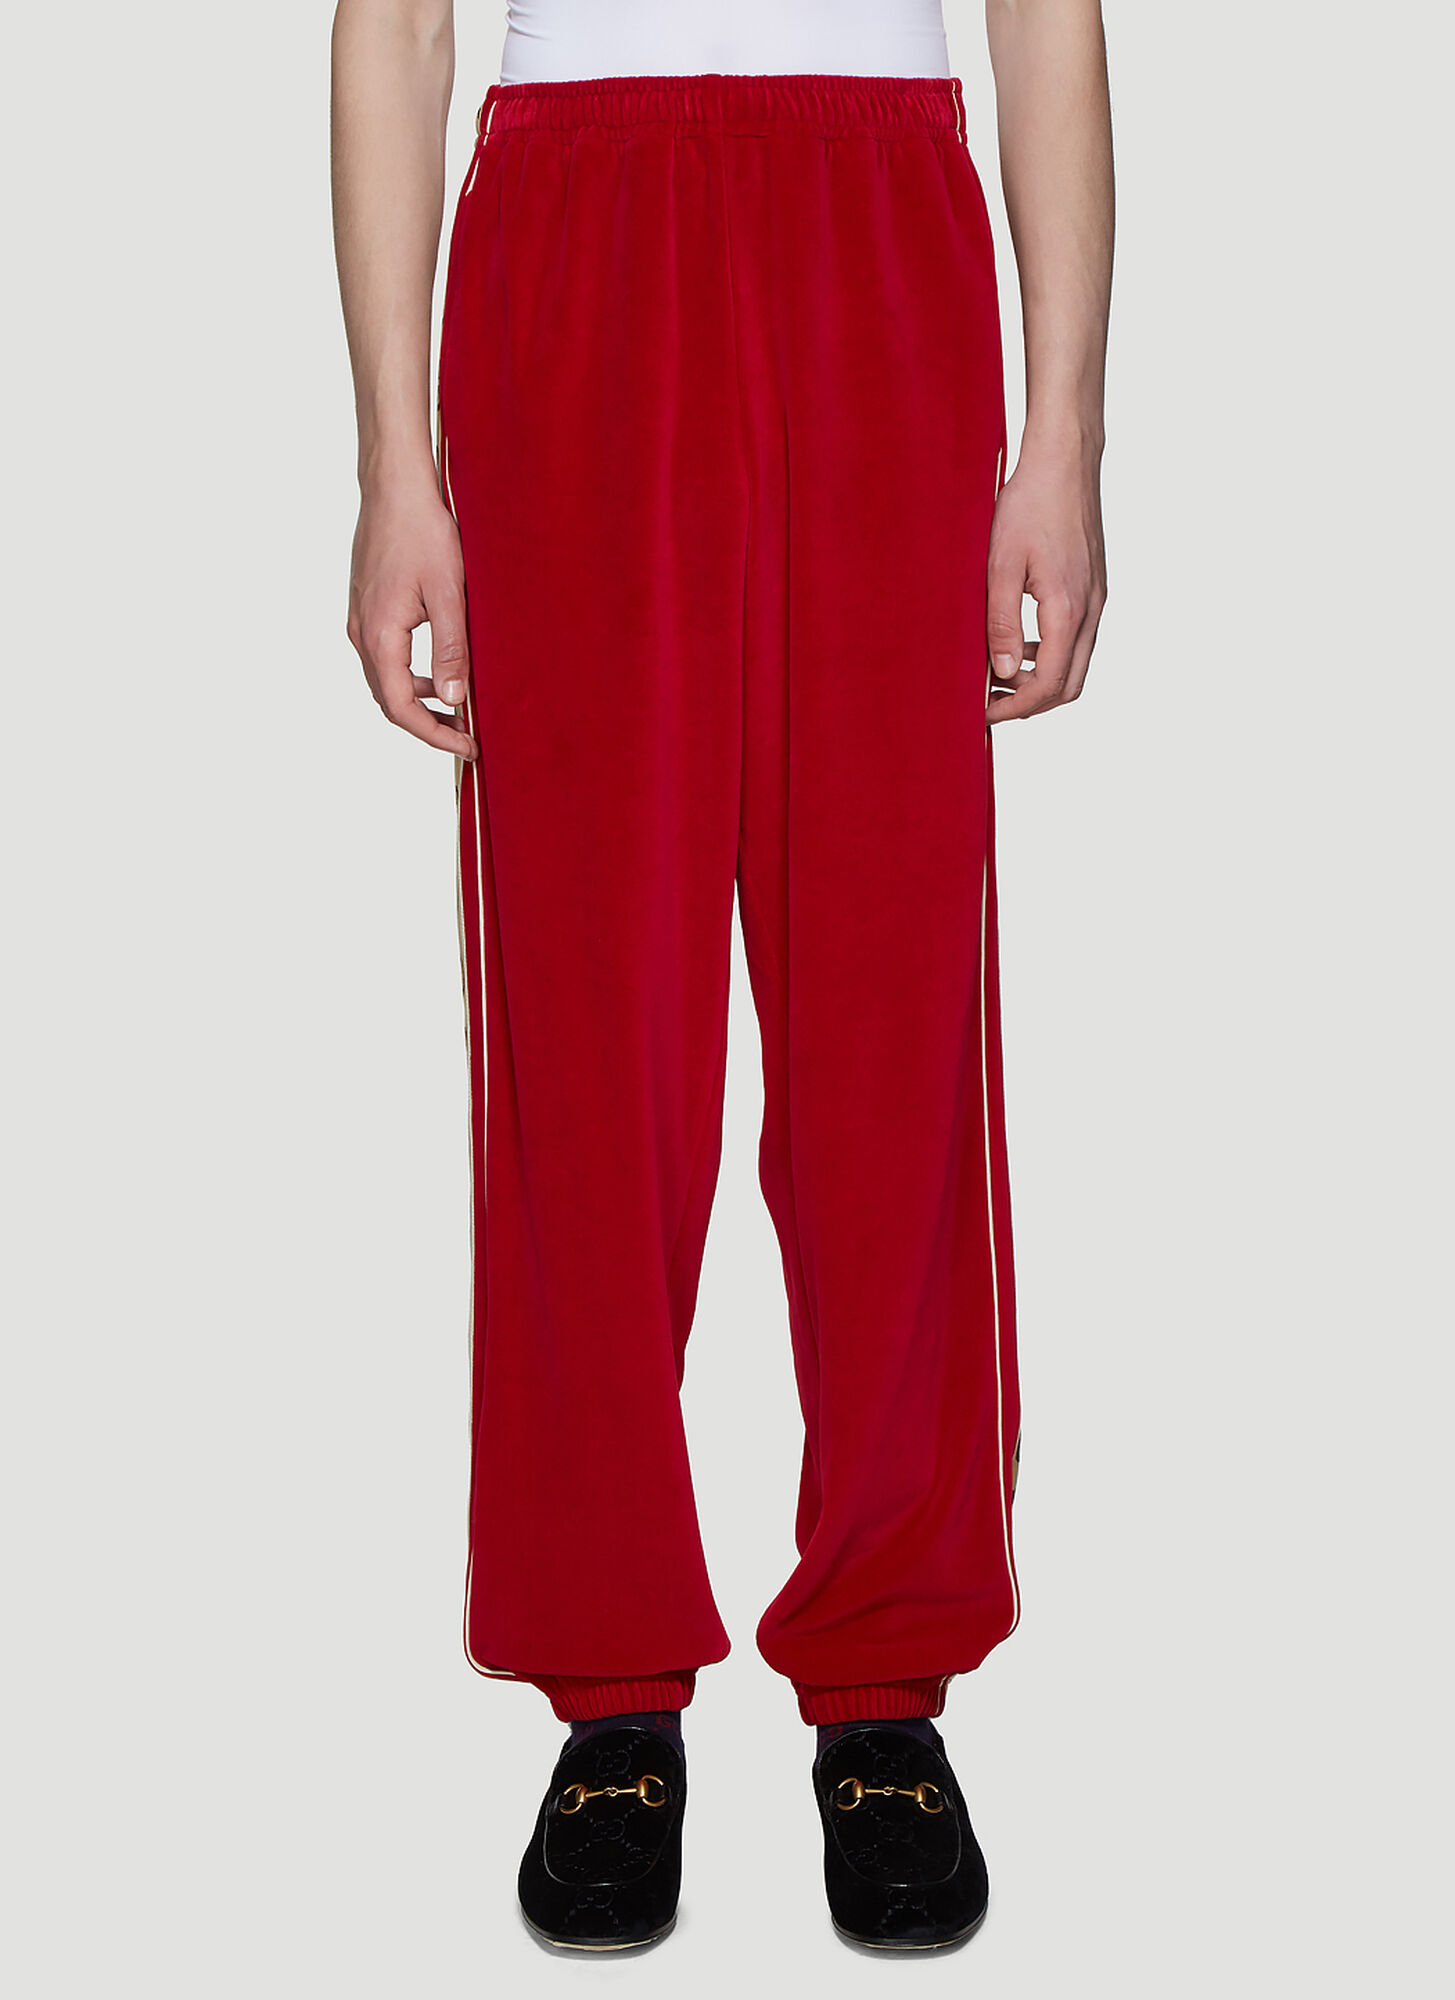 7d078541 Gucci Velour Track Pants in Red size S